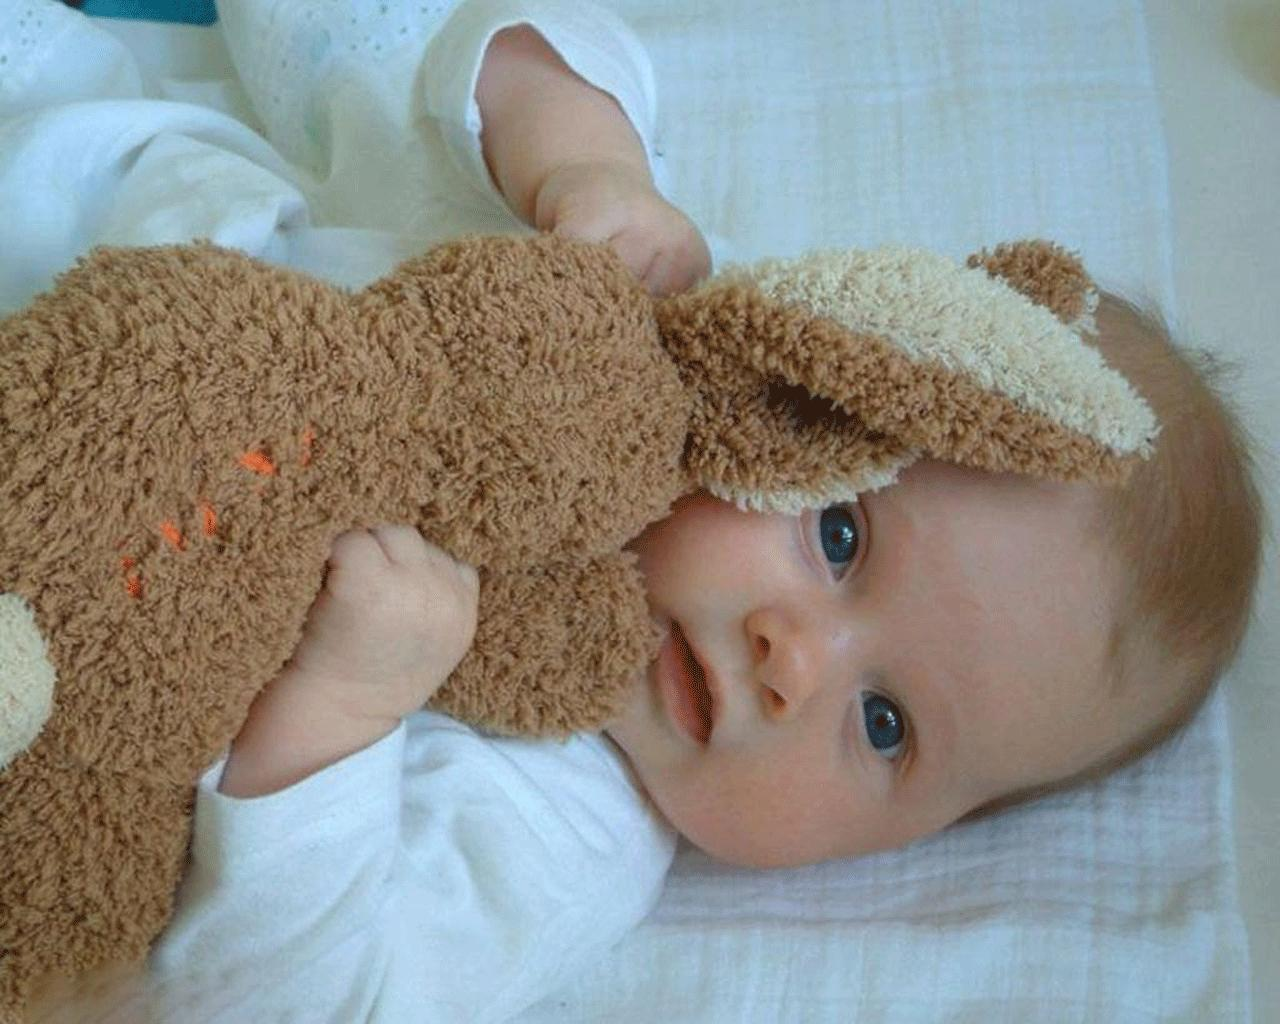 Free Wallpaper Of Baby A Cute Baby Holding A Teddy Bear Click To Wallpaper